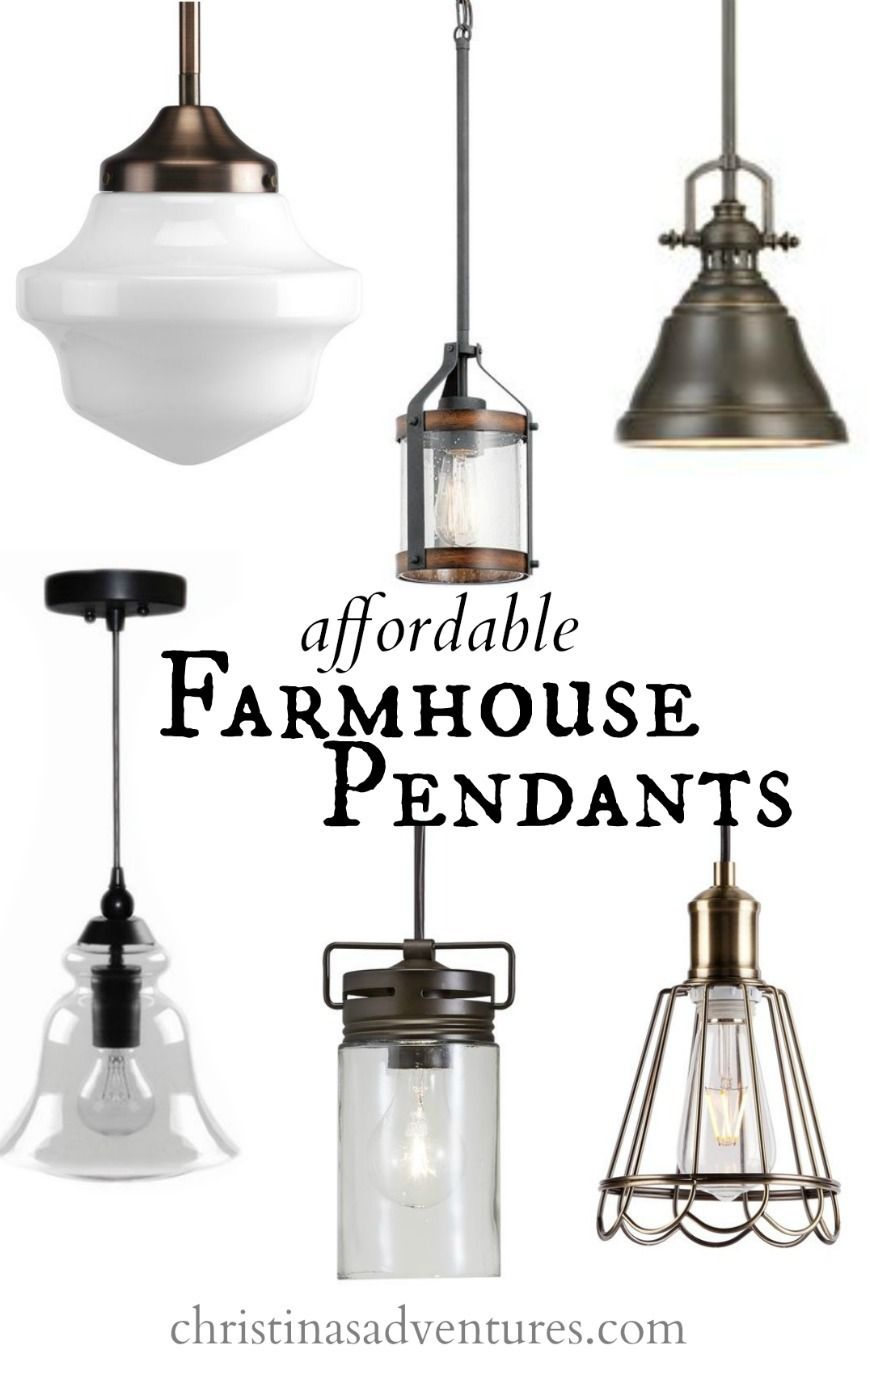 Affordable kitchen design elements farmhouse pendant for Kitchen island lighting pendants